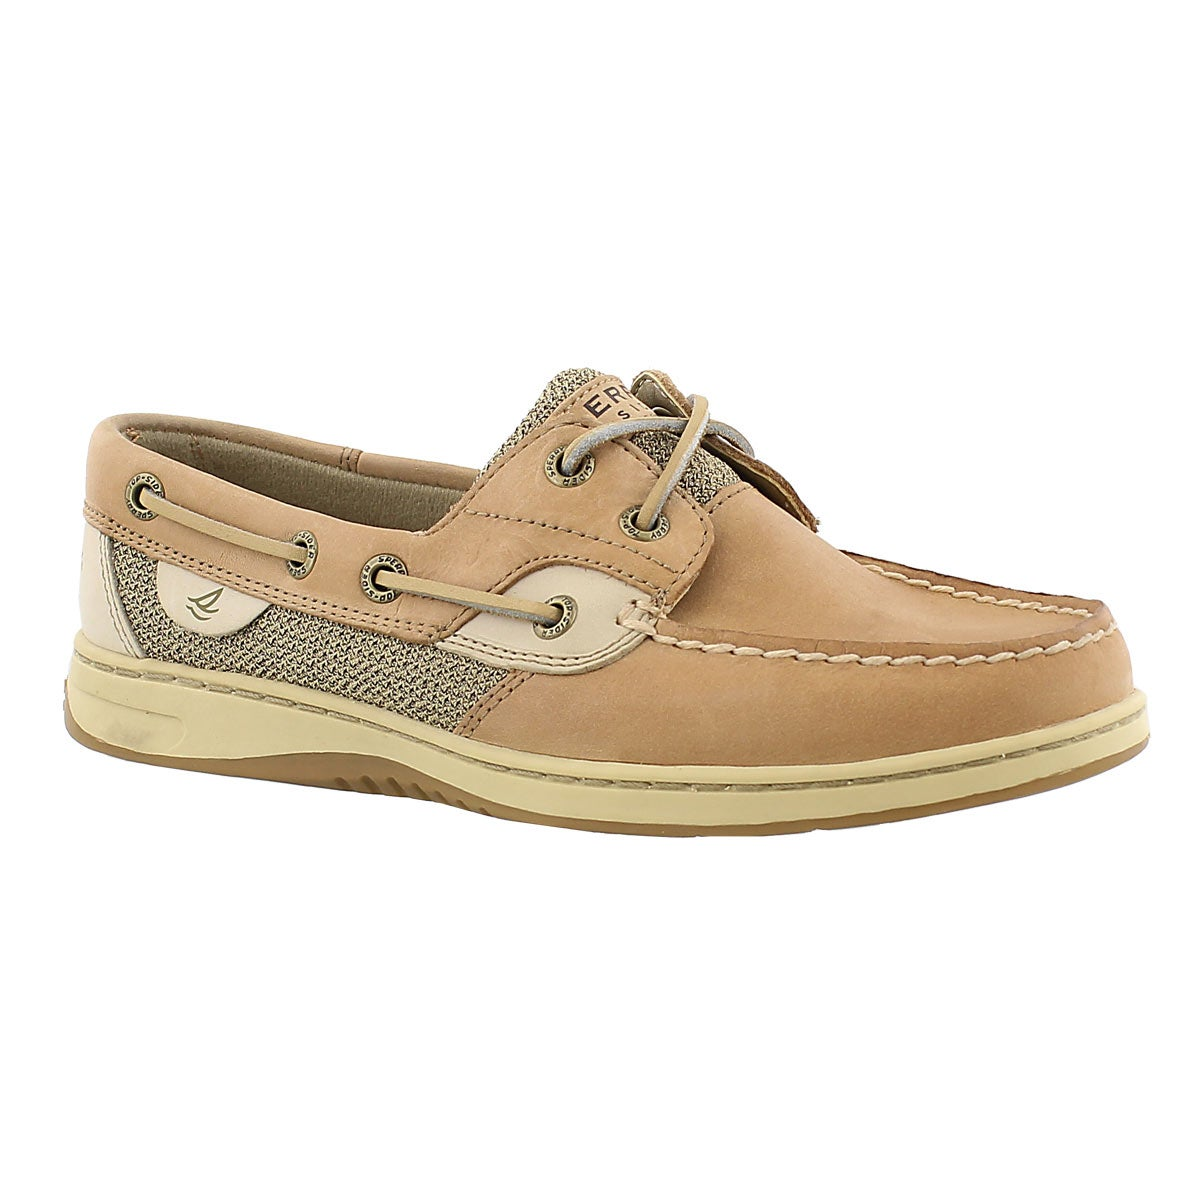 Women's BLUEFISH 2-Eye linen boat shoes - Wide